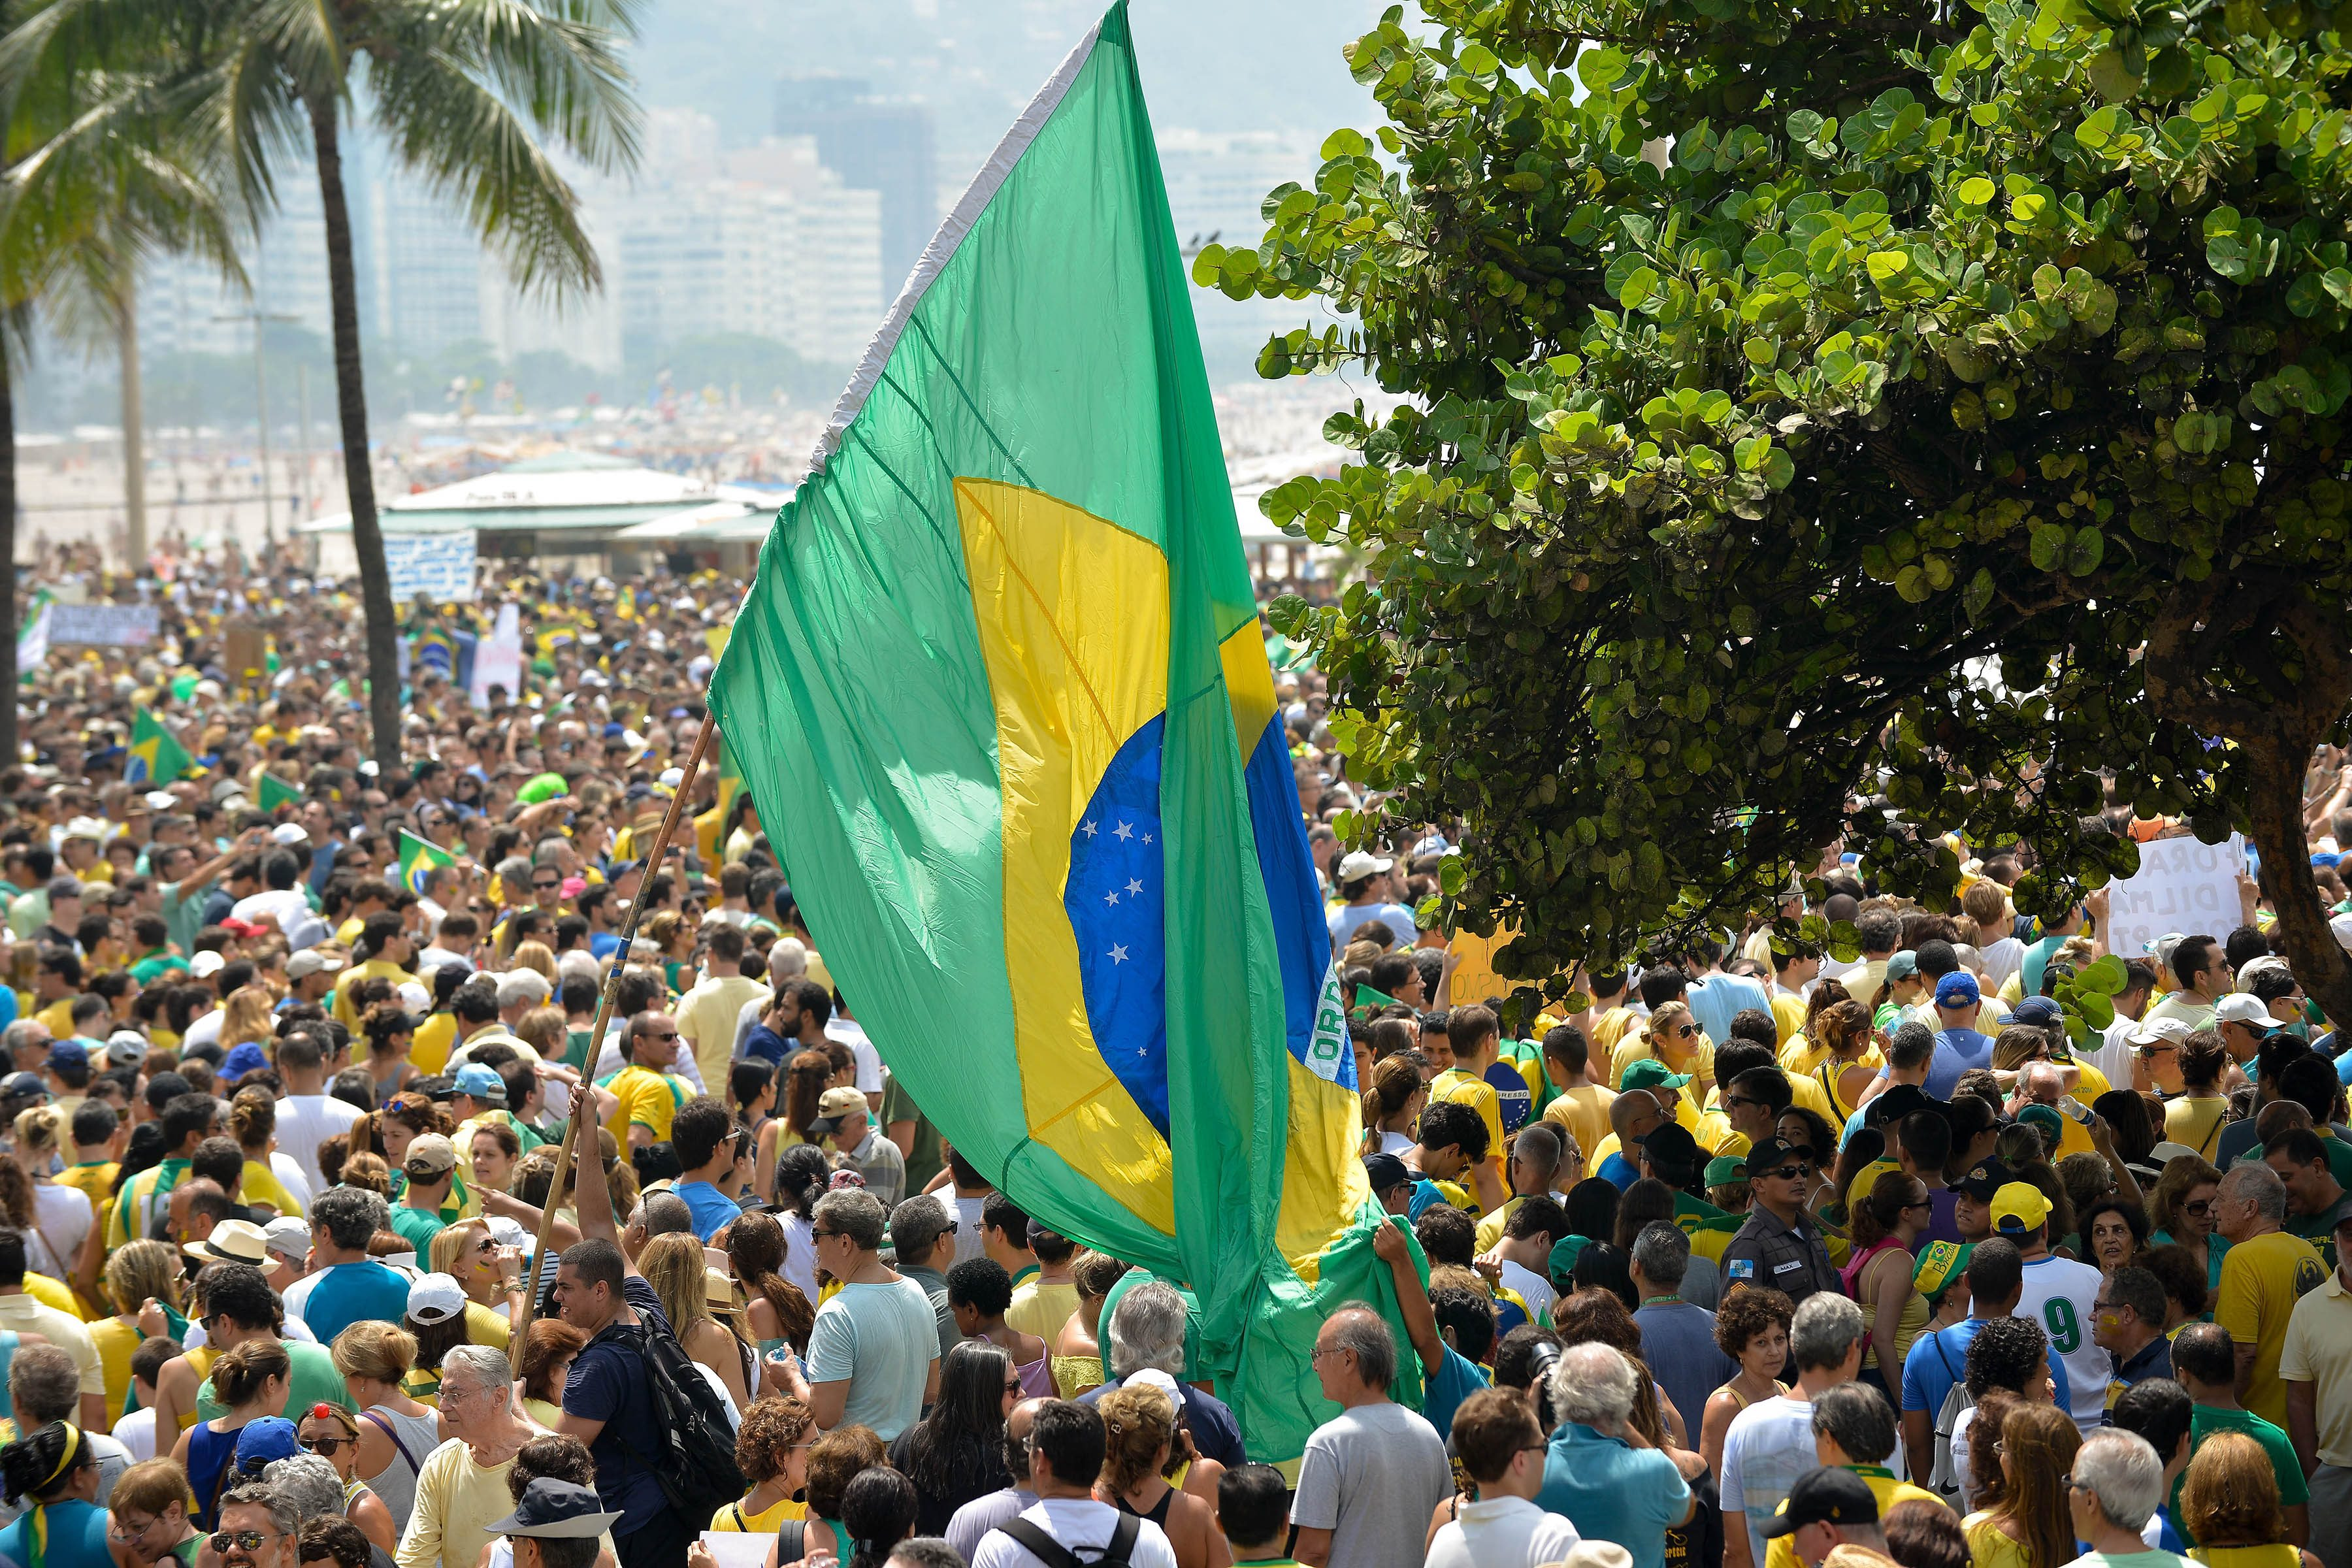 brazil-is-facing-its-worst-recession-in-100-years